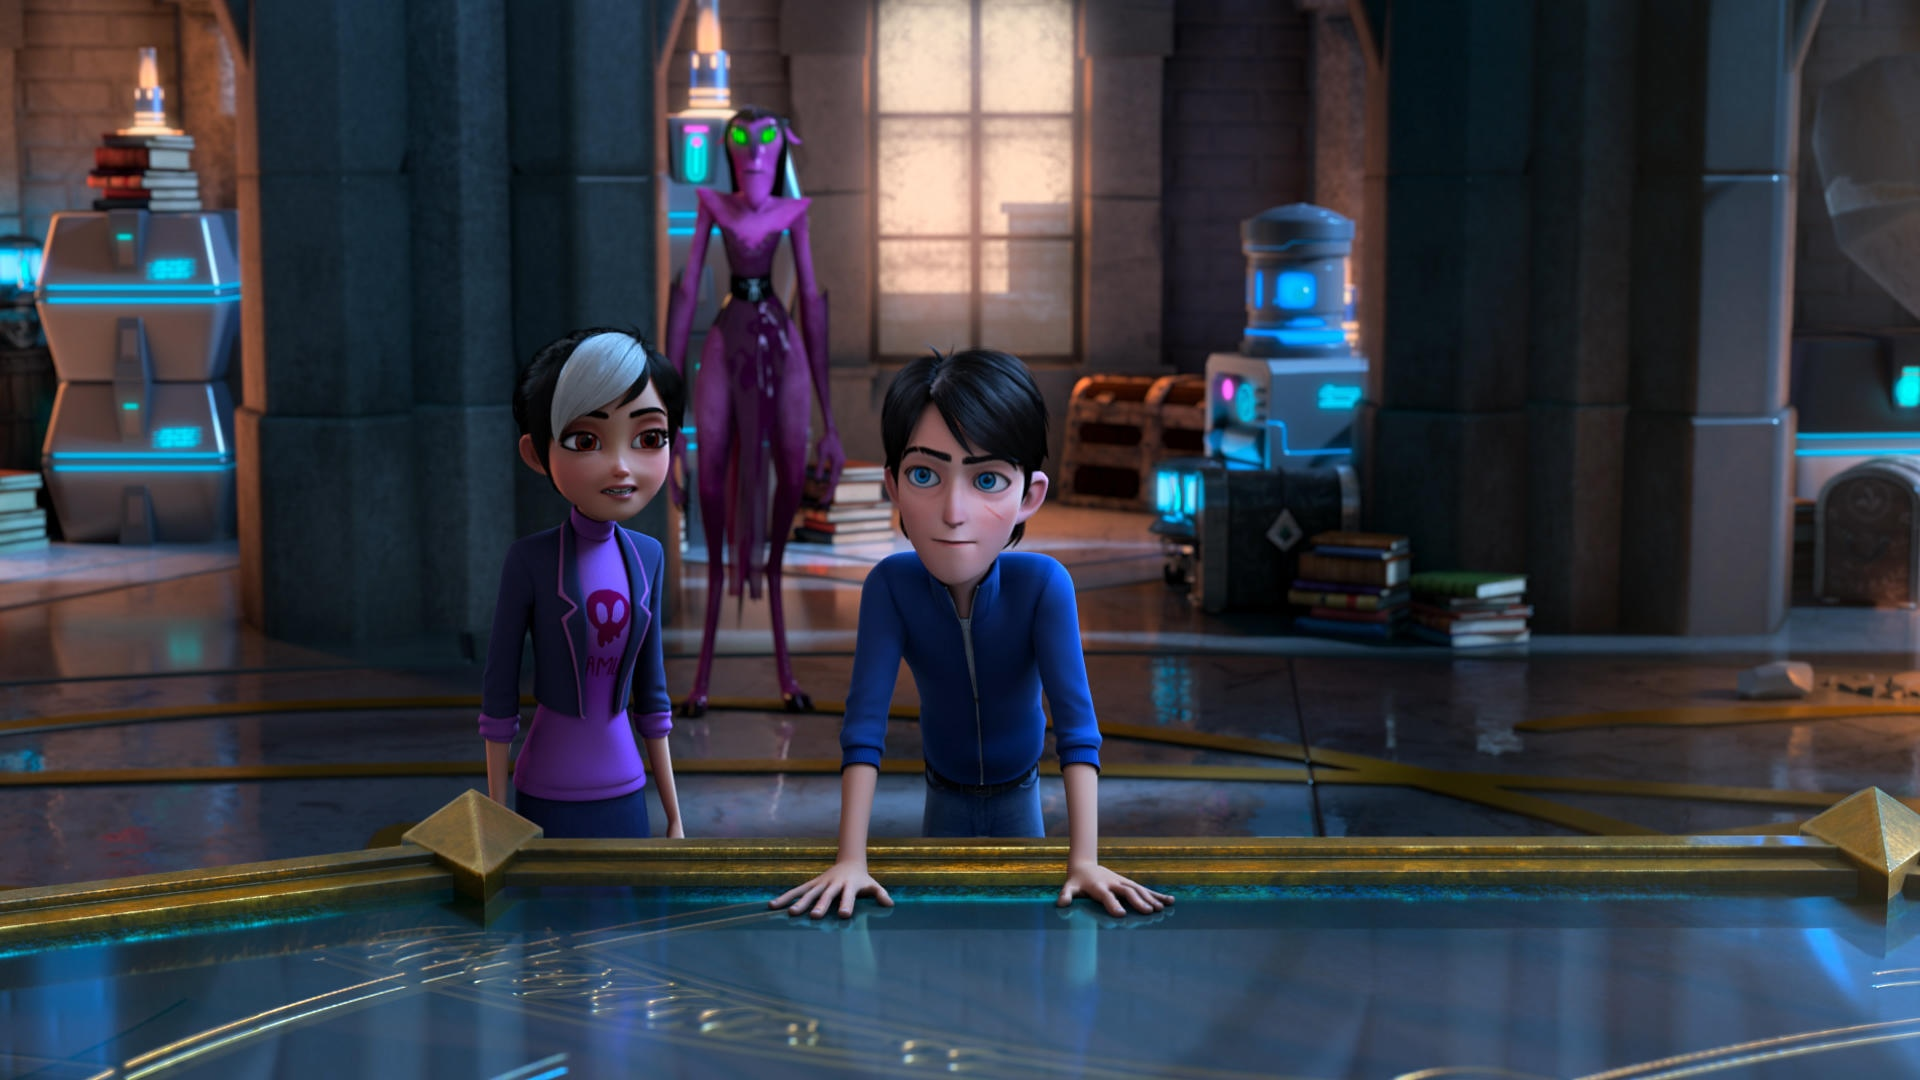 Trollhunters: Rise of the Titans trailer: GDT Delivers A Dazzling Animated Epic